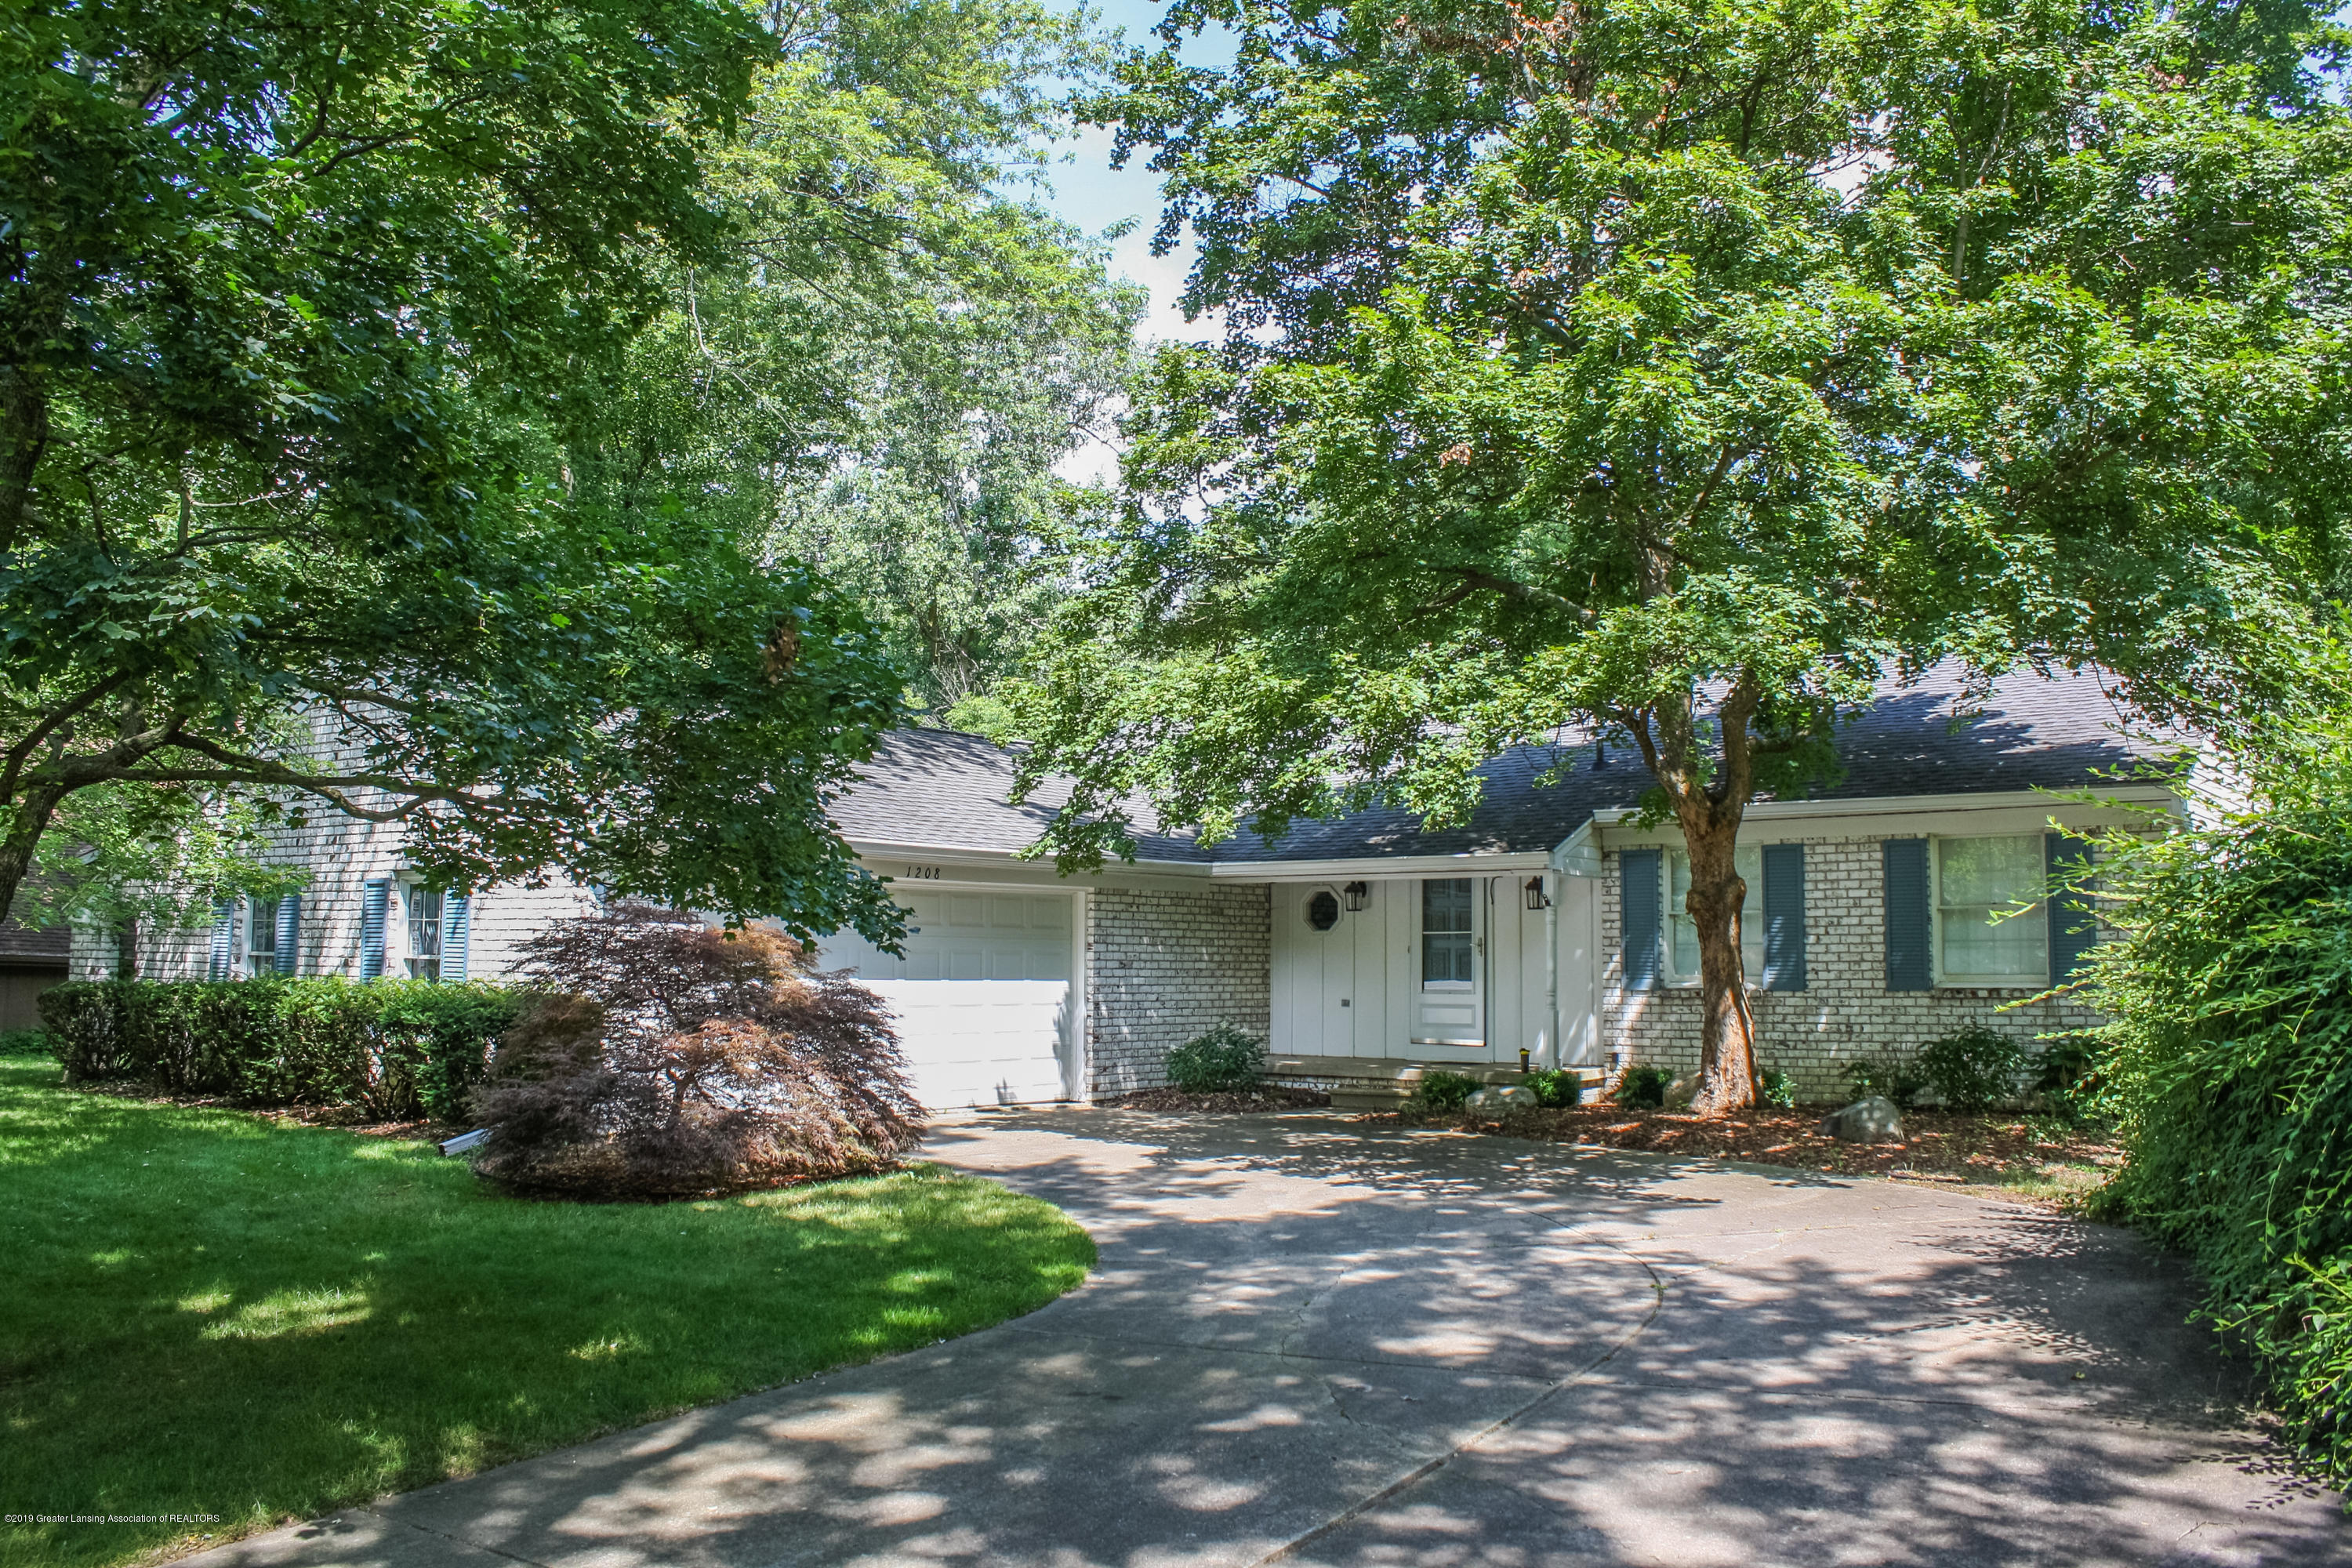 1208 Blanchette Dr - untitled-0258 - 1